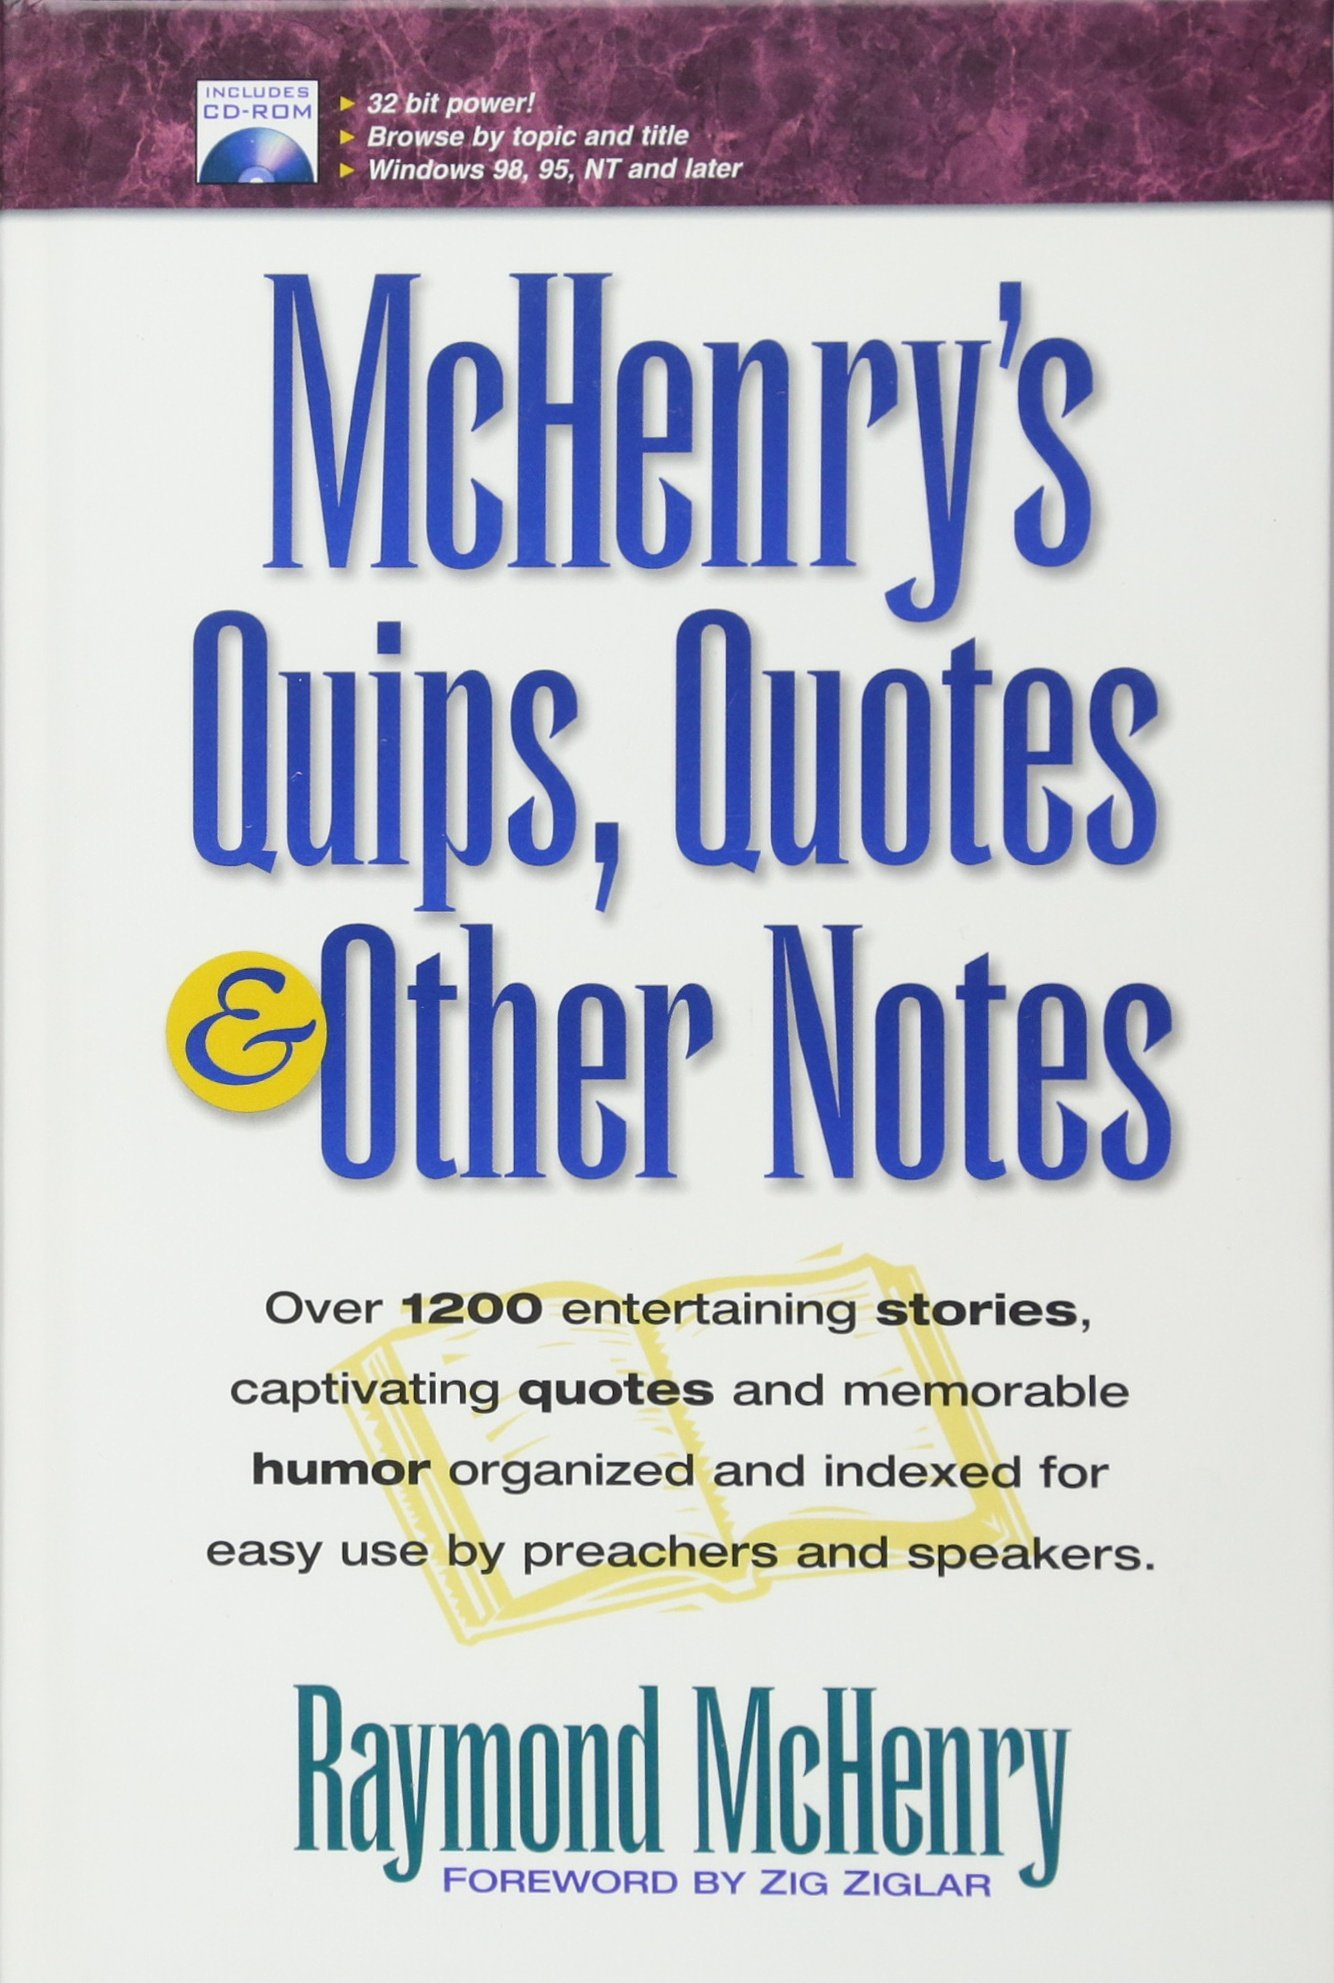 McHenry's Quips, Quotes & Other Notes ebook